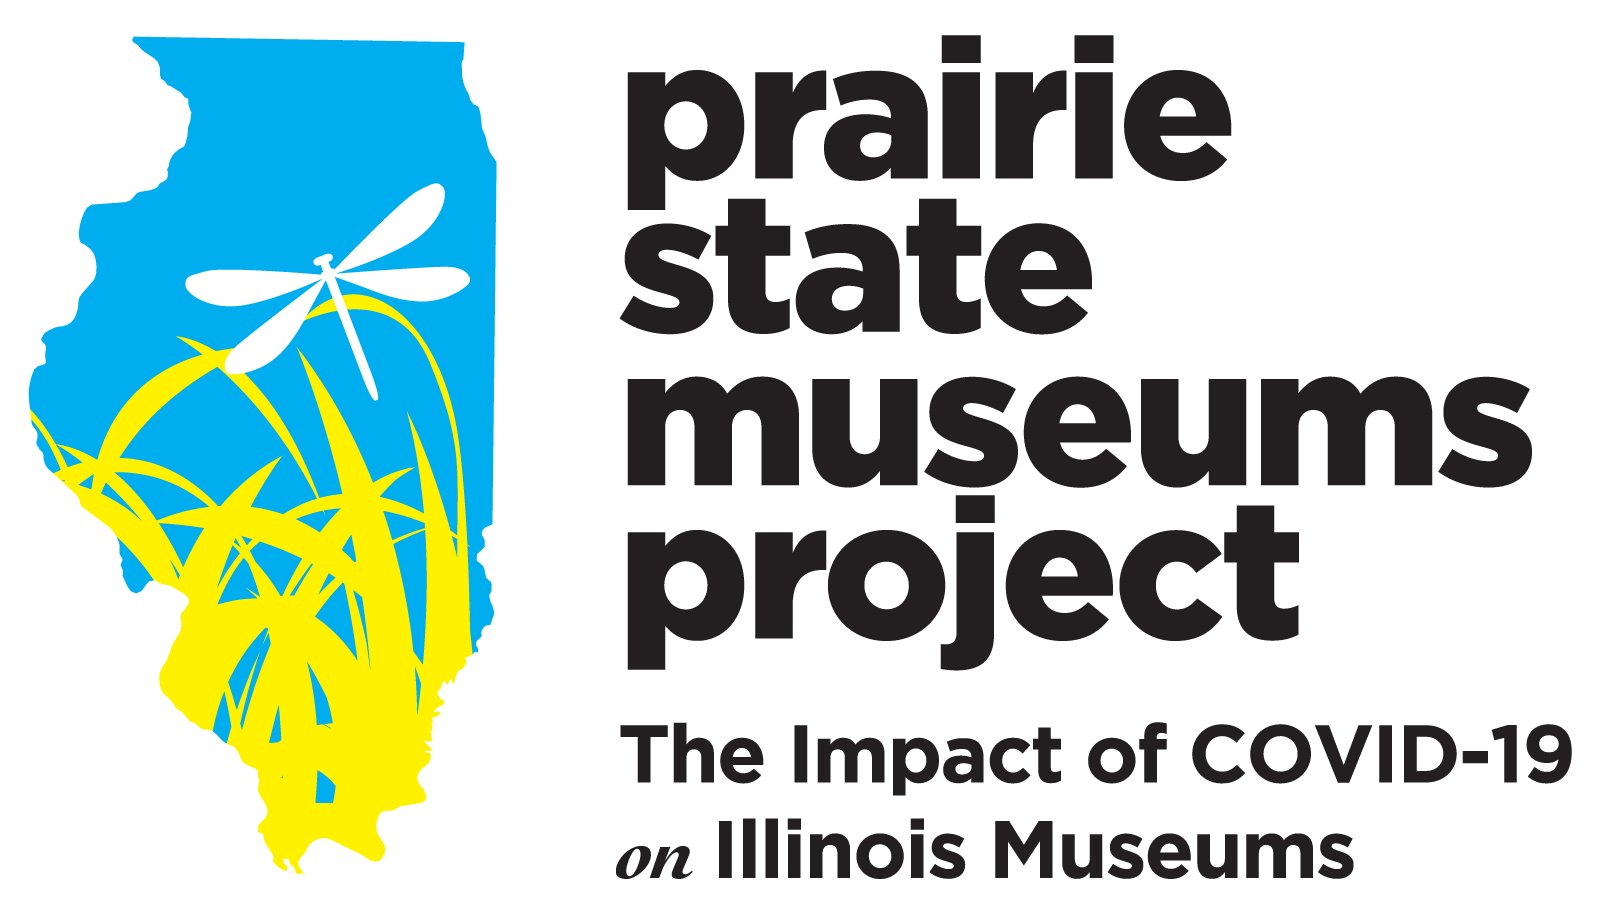 Prairie State Museums Project